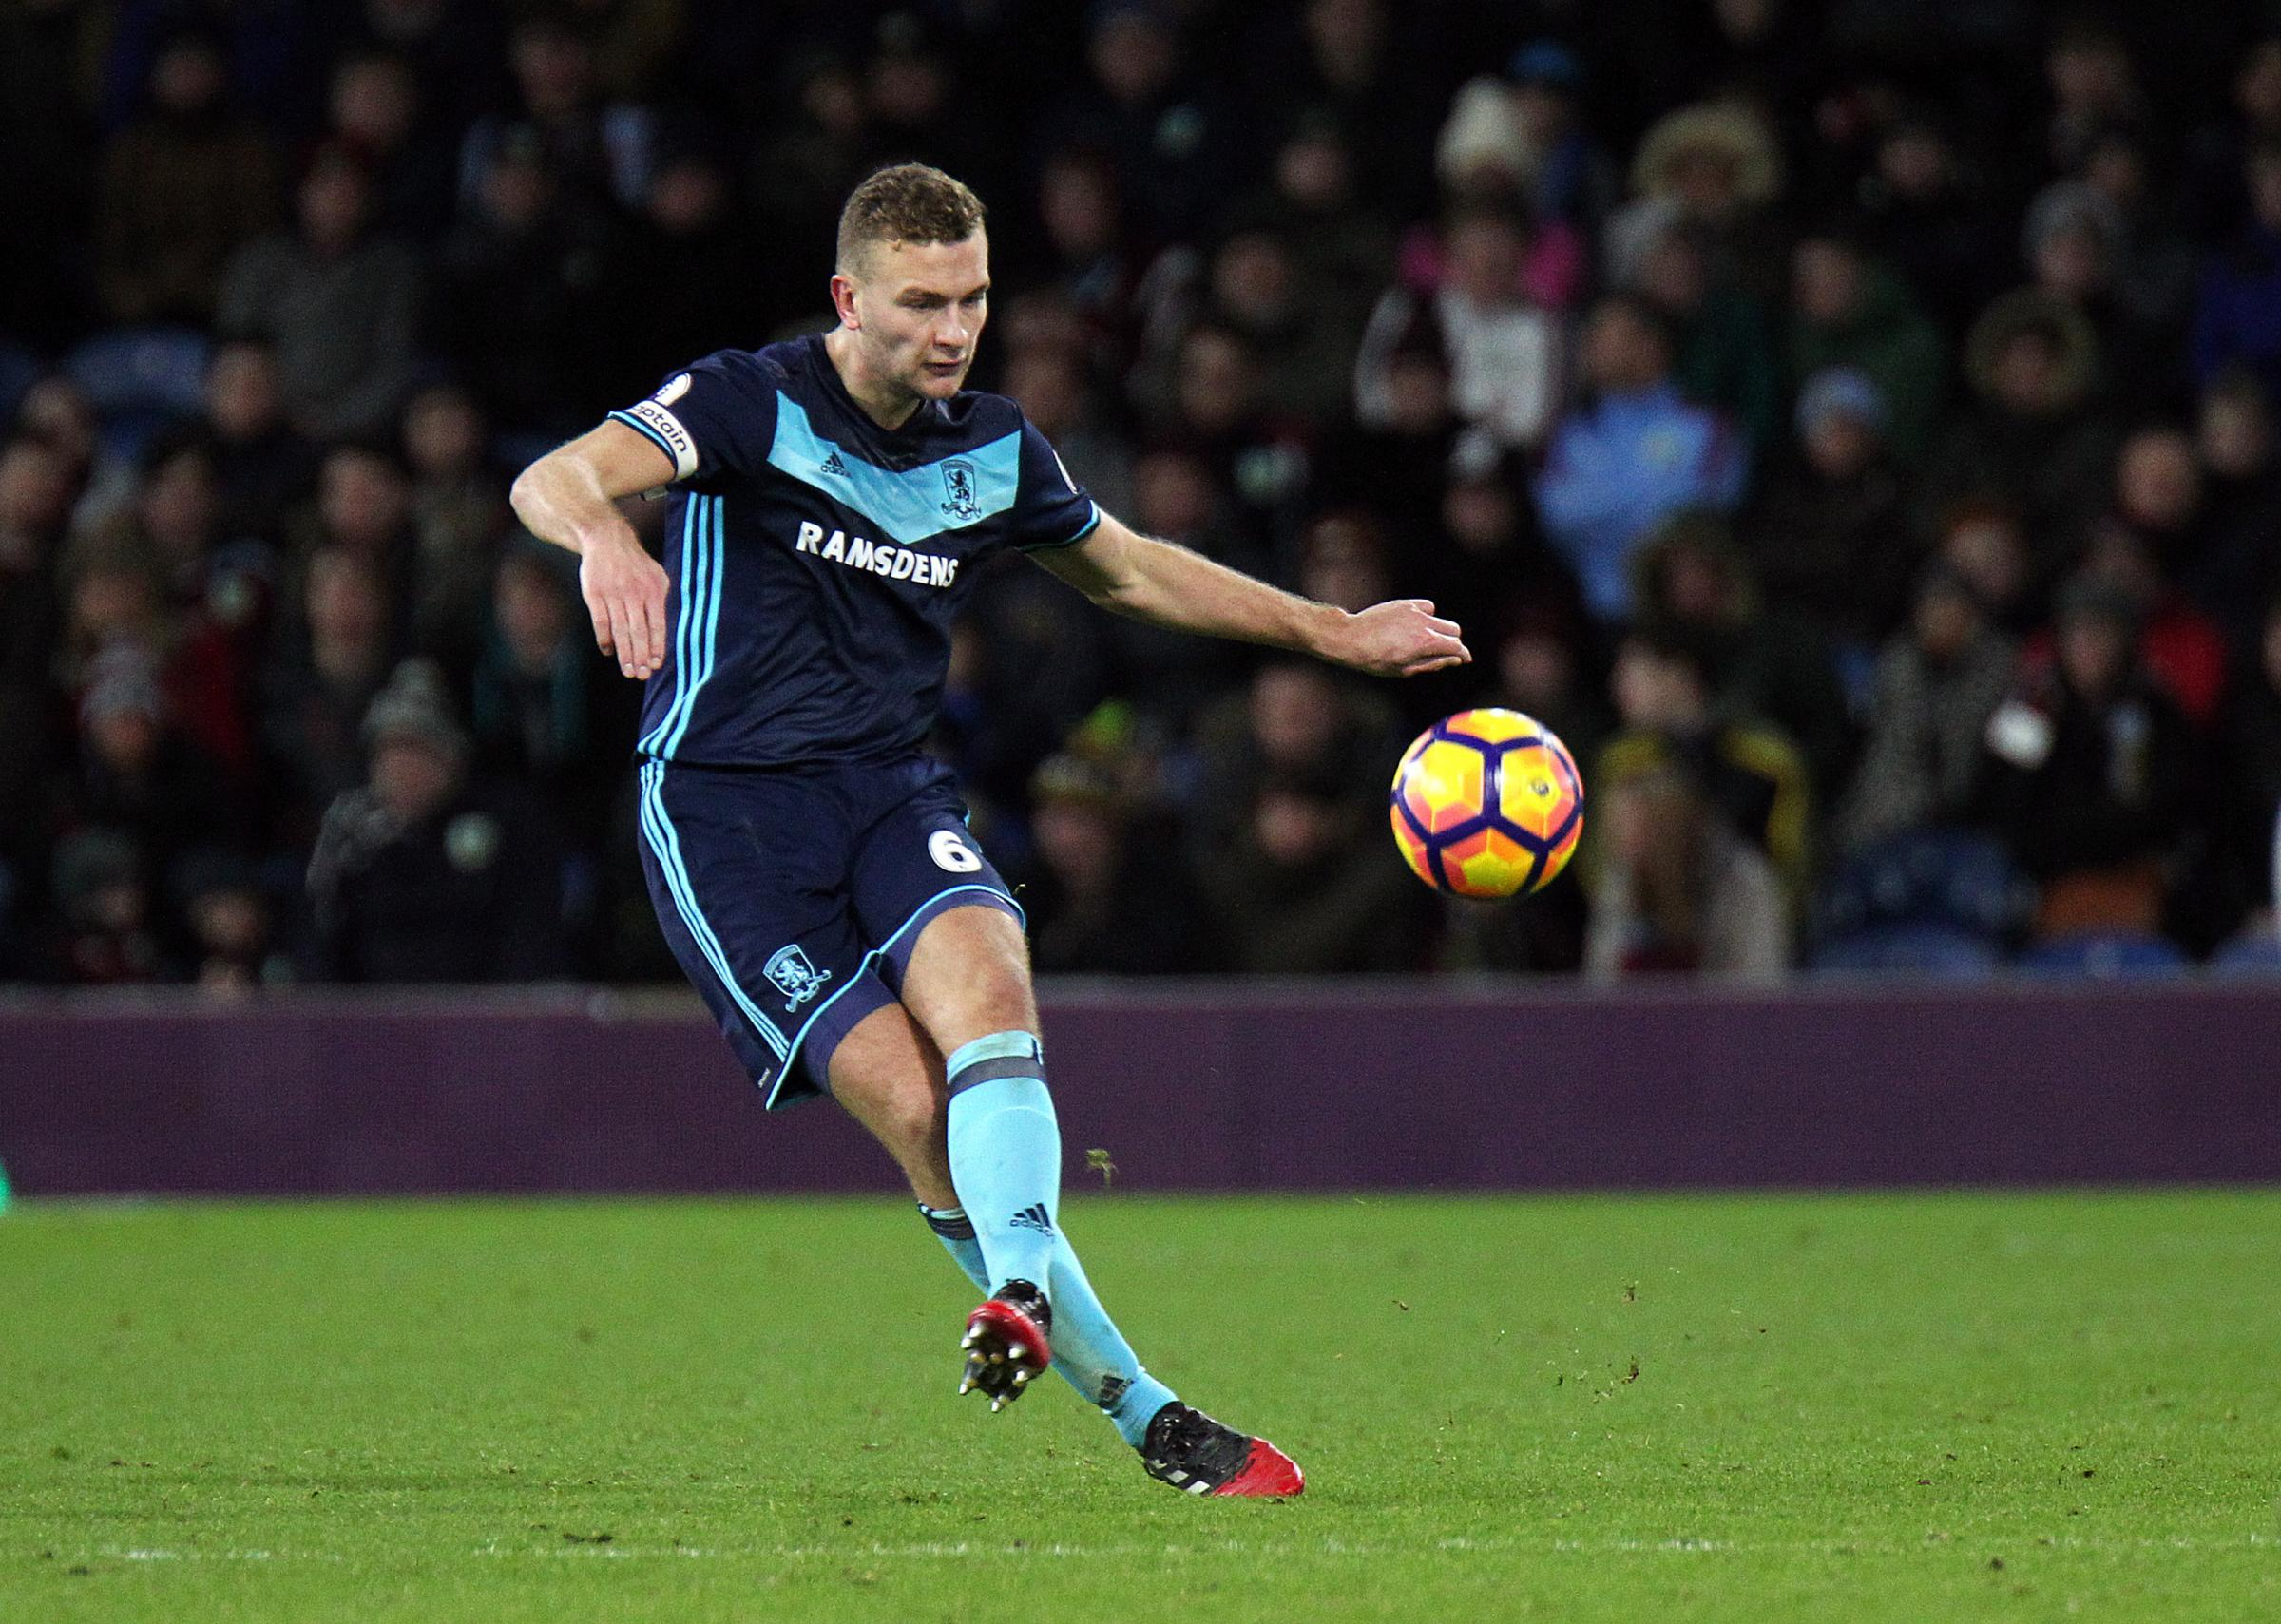 Ben Gibson is set to sign for Burnley this weekend